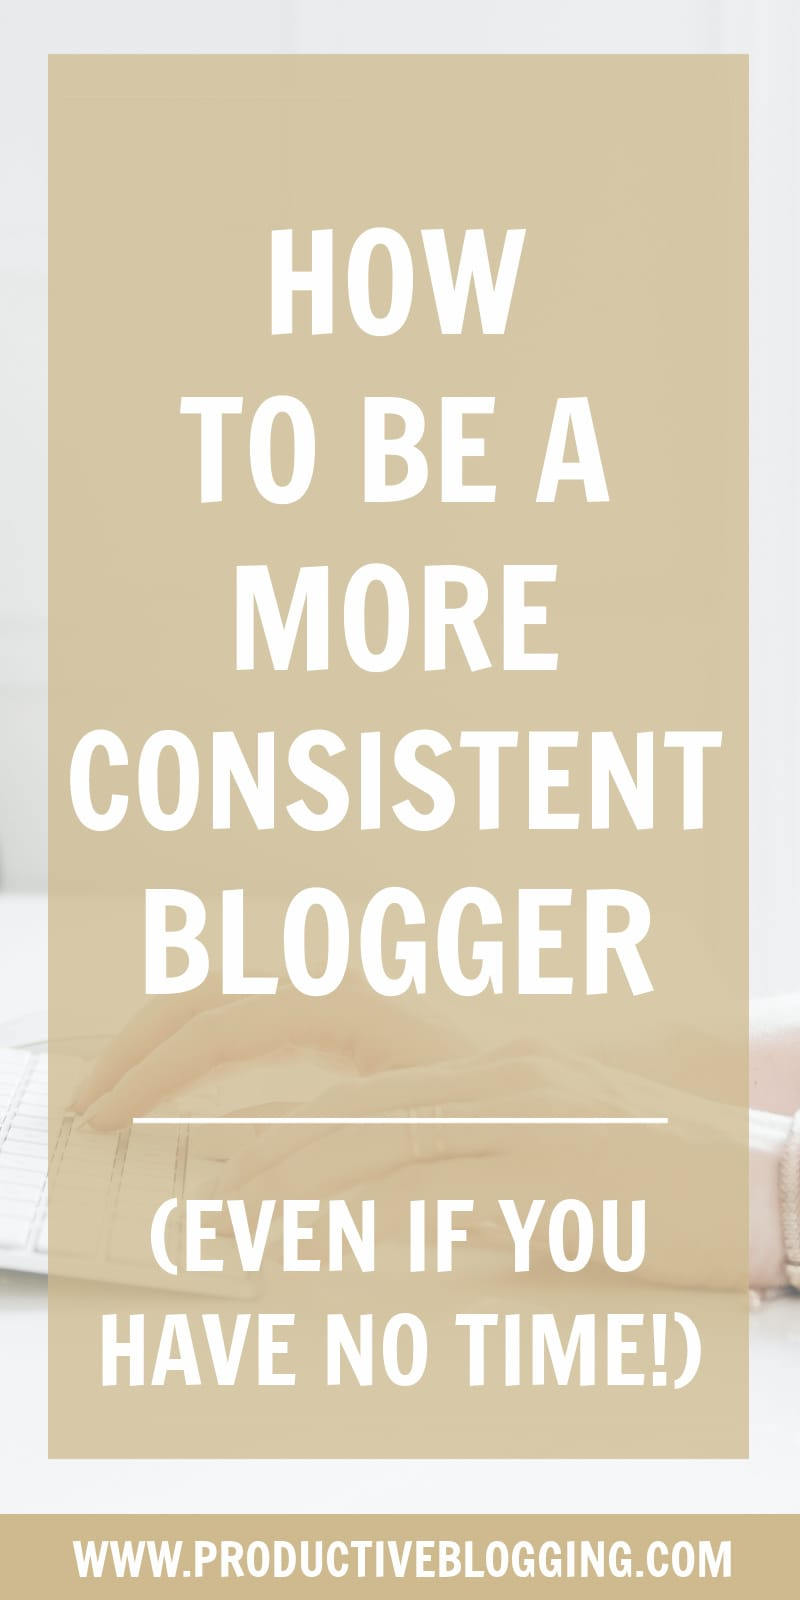 Consistent blogging is the key to successful blogging. But how? Here's my step-by-step guide to blogging more consistently (even if you have NO TIME!) #consistent #consistentblogger #consistentblogging #blogconsistently #consistency #improveconsistency #todolist #dailytodos #dailyplanning #planning #timemanagement #efficiency #goals #blogginggoals #blog #blogging #blogger #bloggingtips #organised #organized #productivity #productivitytips #productiveblogging #blogsmarternotharder #BSNH